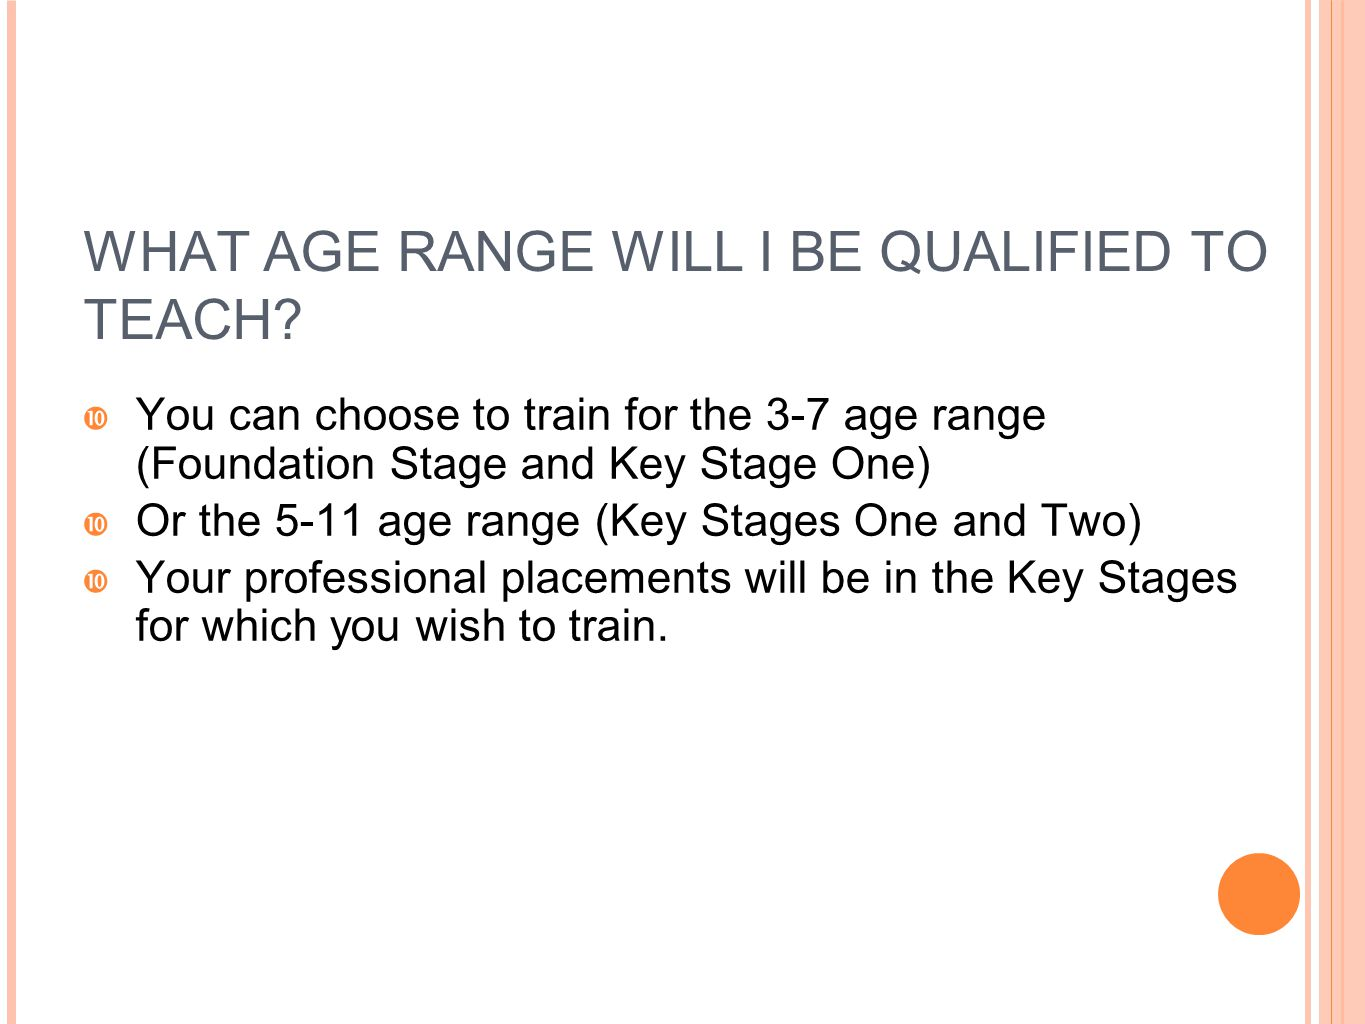 WHAT AGE RANGE WILL I BE QUALIFIED TO TEACH